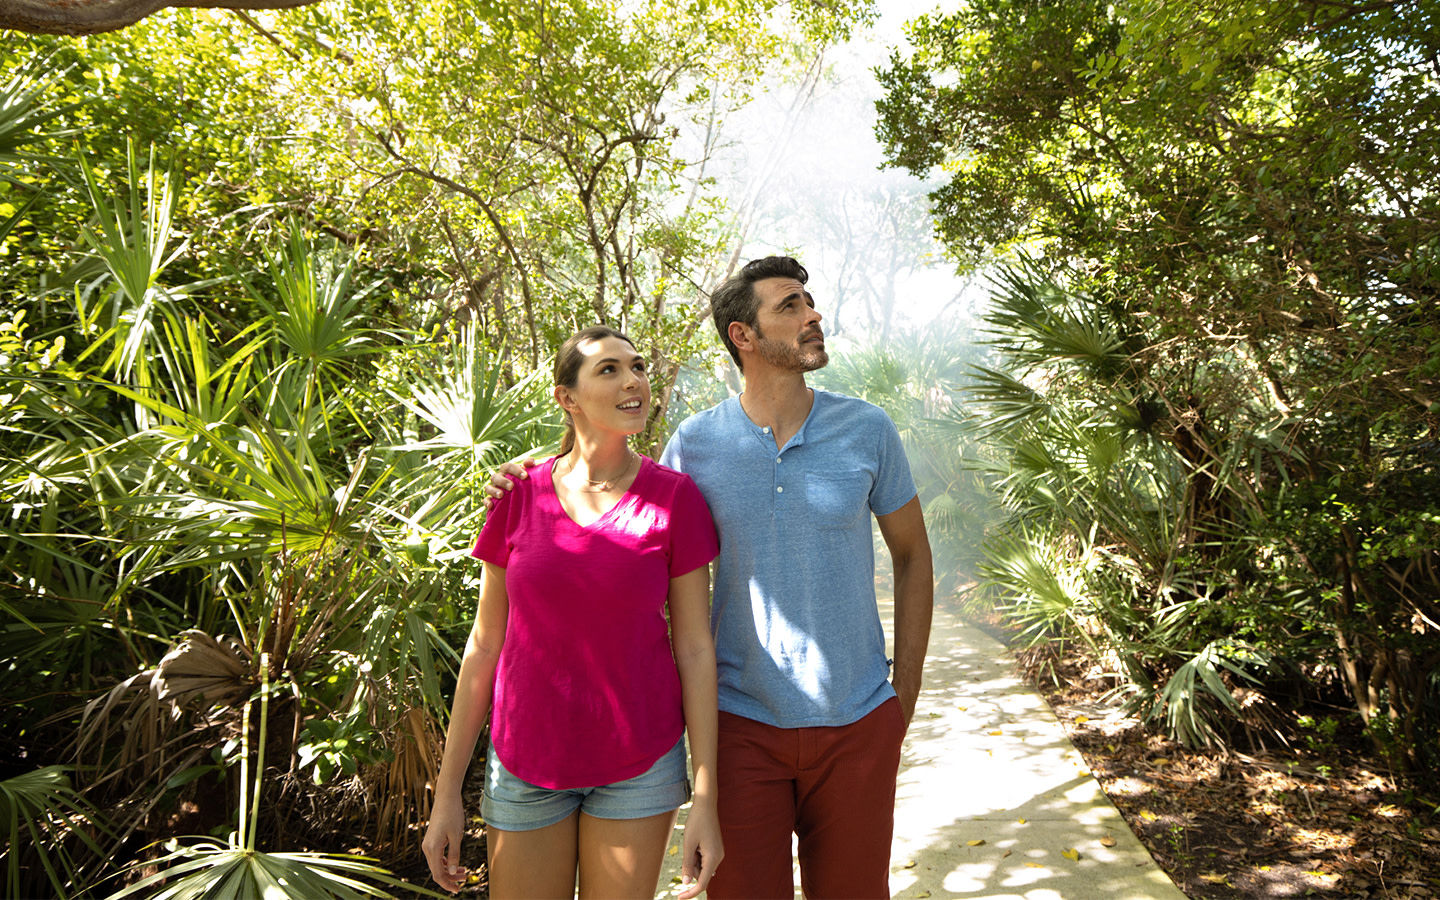 Couple walking in a nature trail at Crandon Park